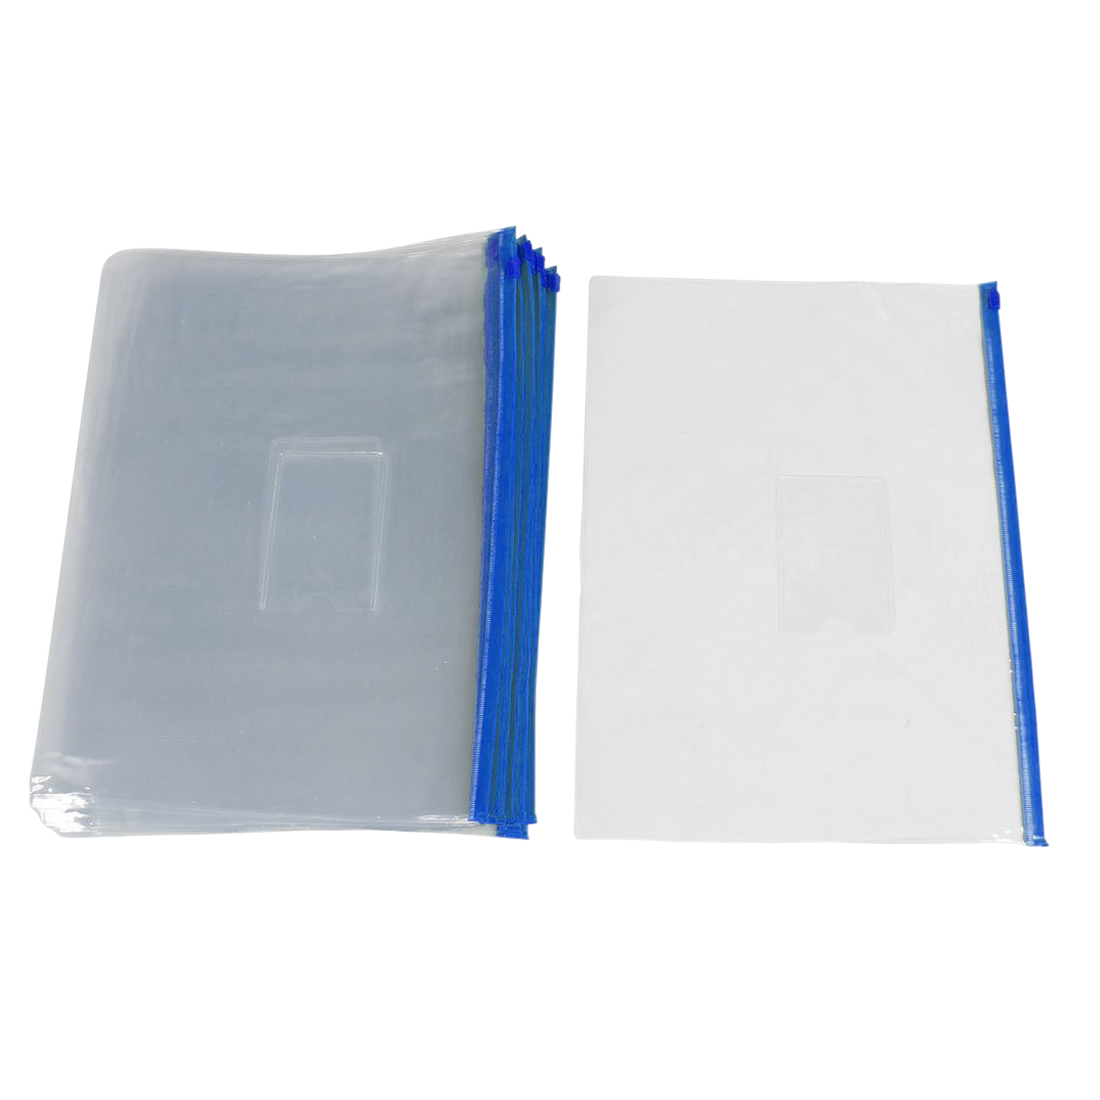 20 Pieces Transparent Blue Plastic Bag With A Zipper Slide Holder A4 Paper Bag